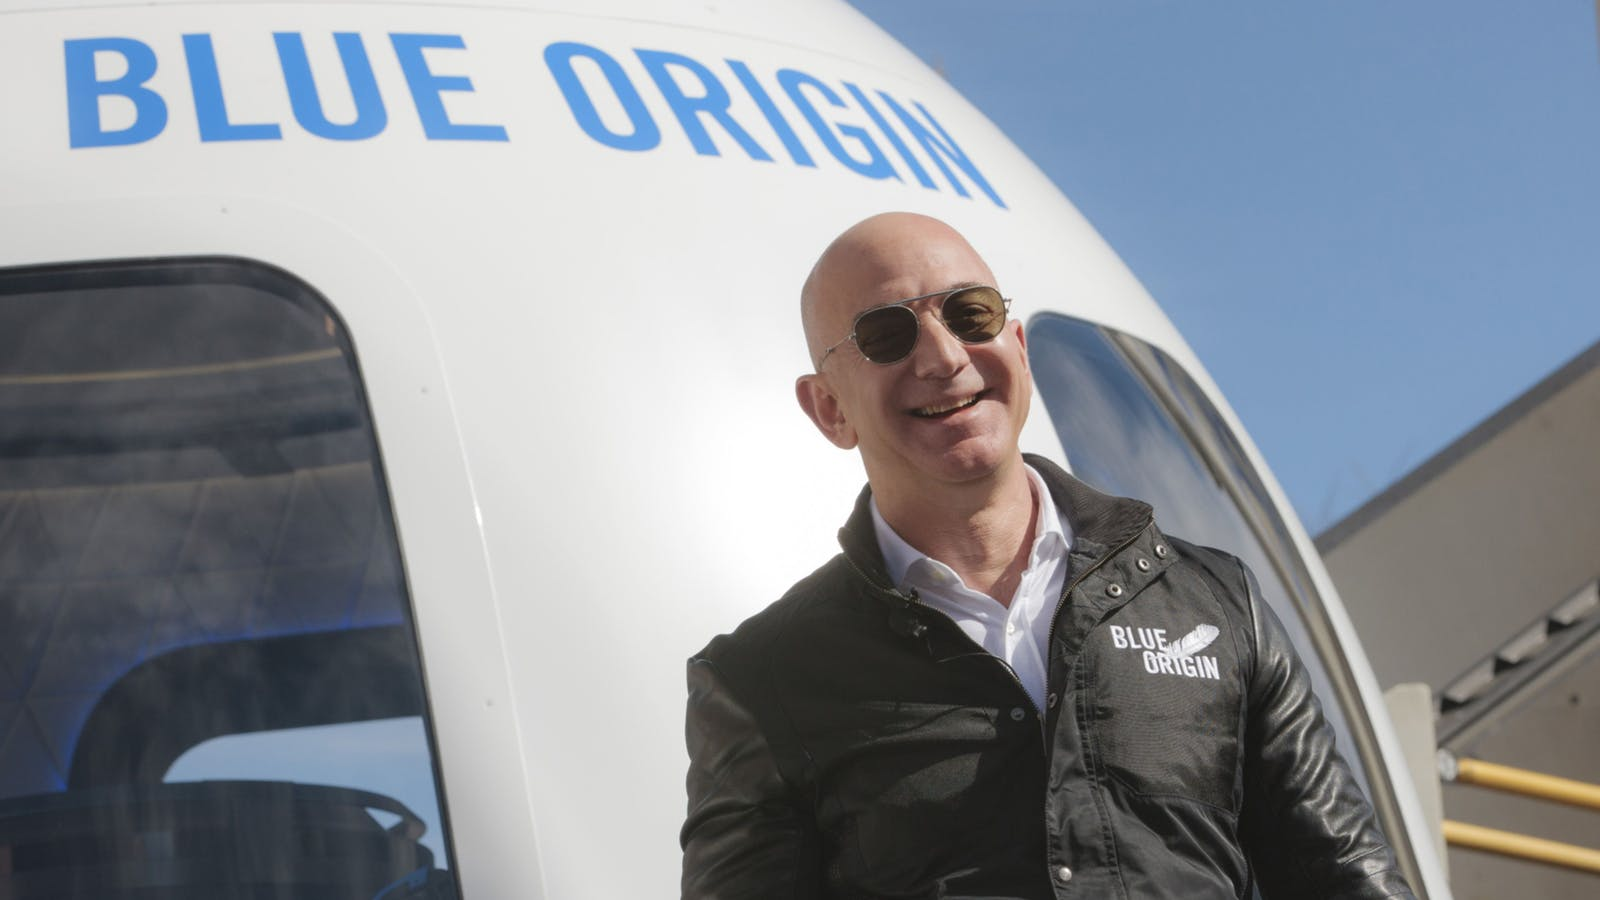 Jeff Bezos at a Blue Origin event in 2017. Photo by Bloomberg